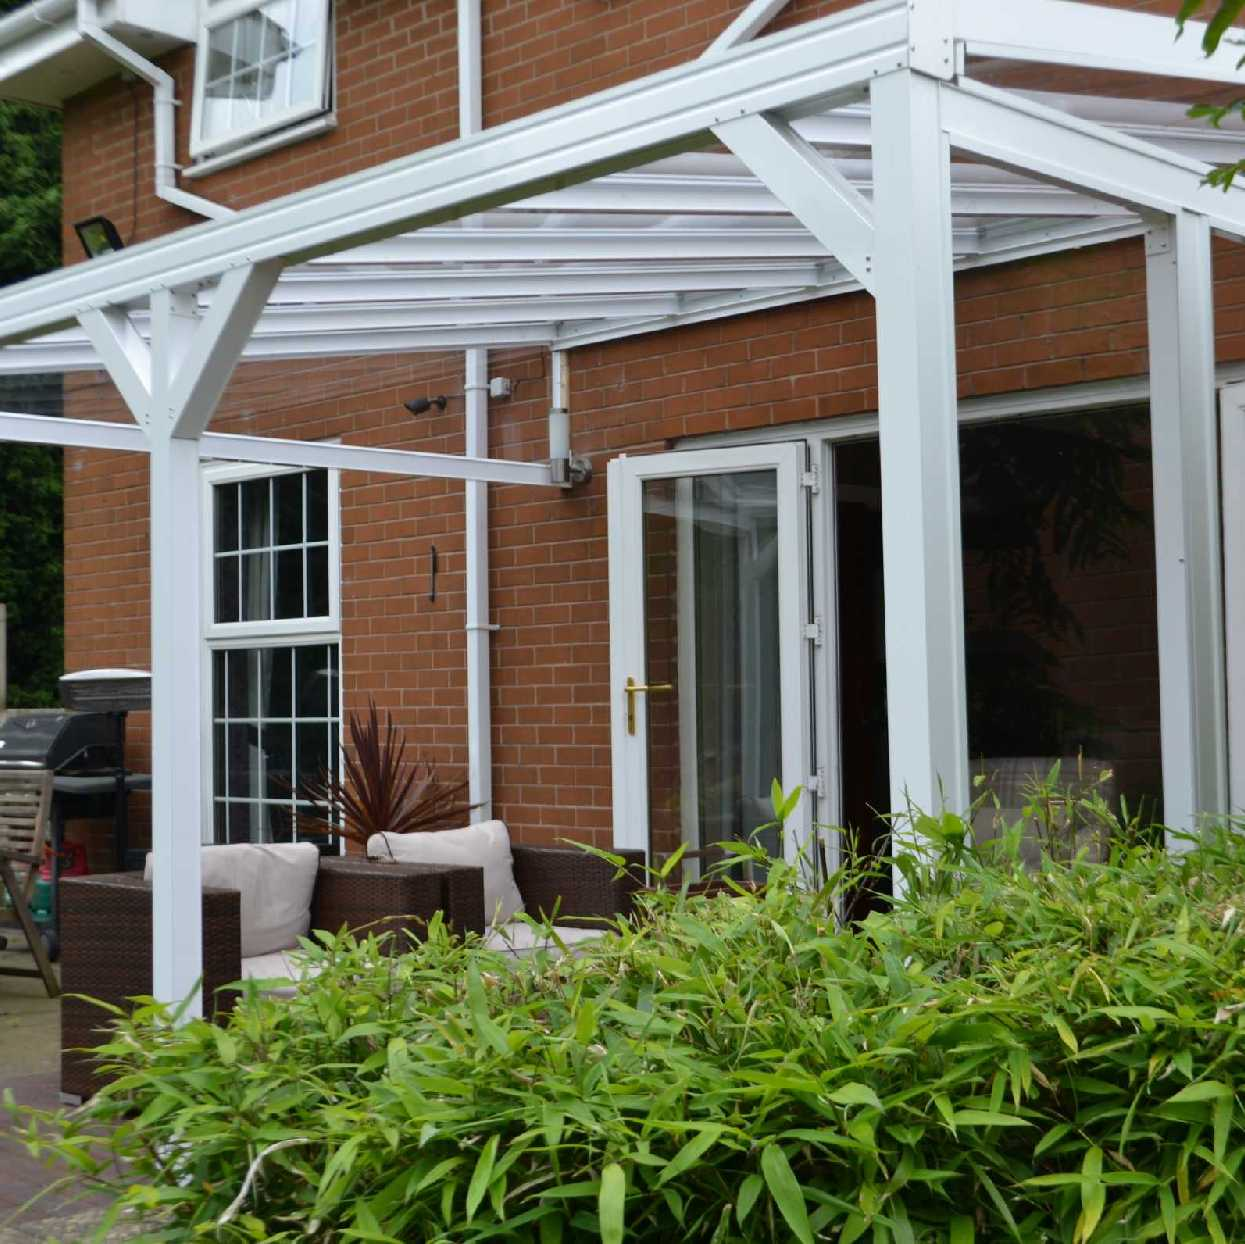 Omega Smart White Lean-To Canopy UNGLAZED for 6mm Glazing - 9.1m (W) x 2.0m (P), (5) Supporting Posts from Omega Build